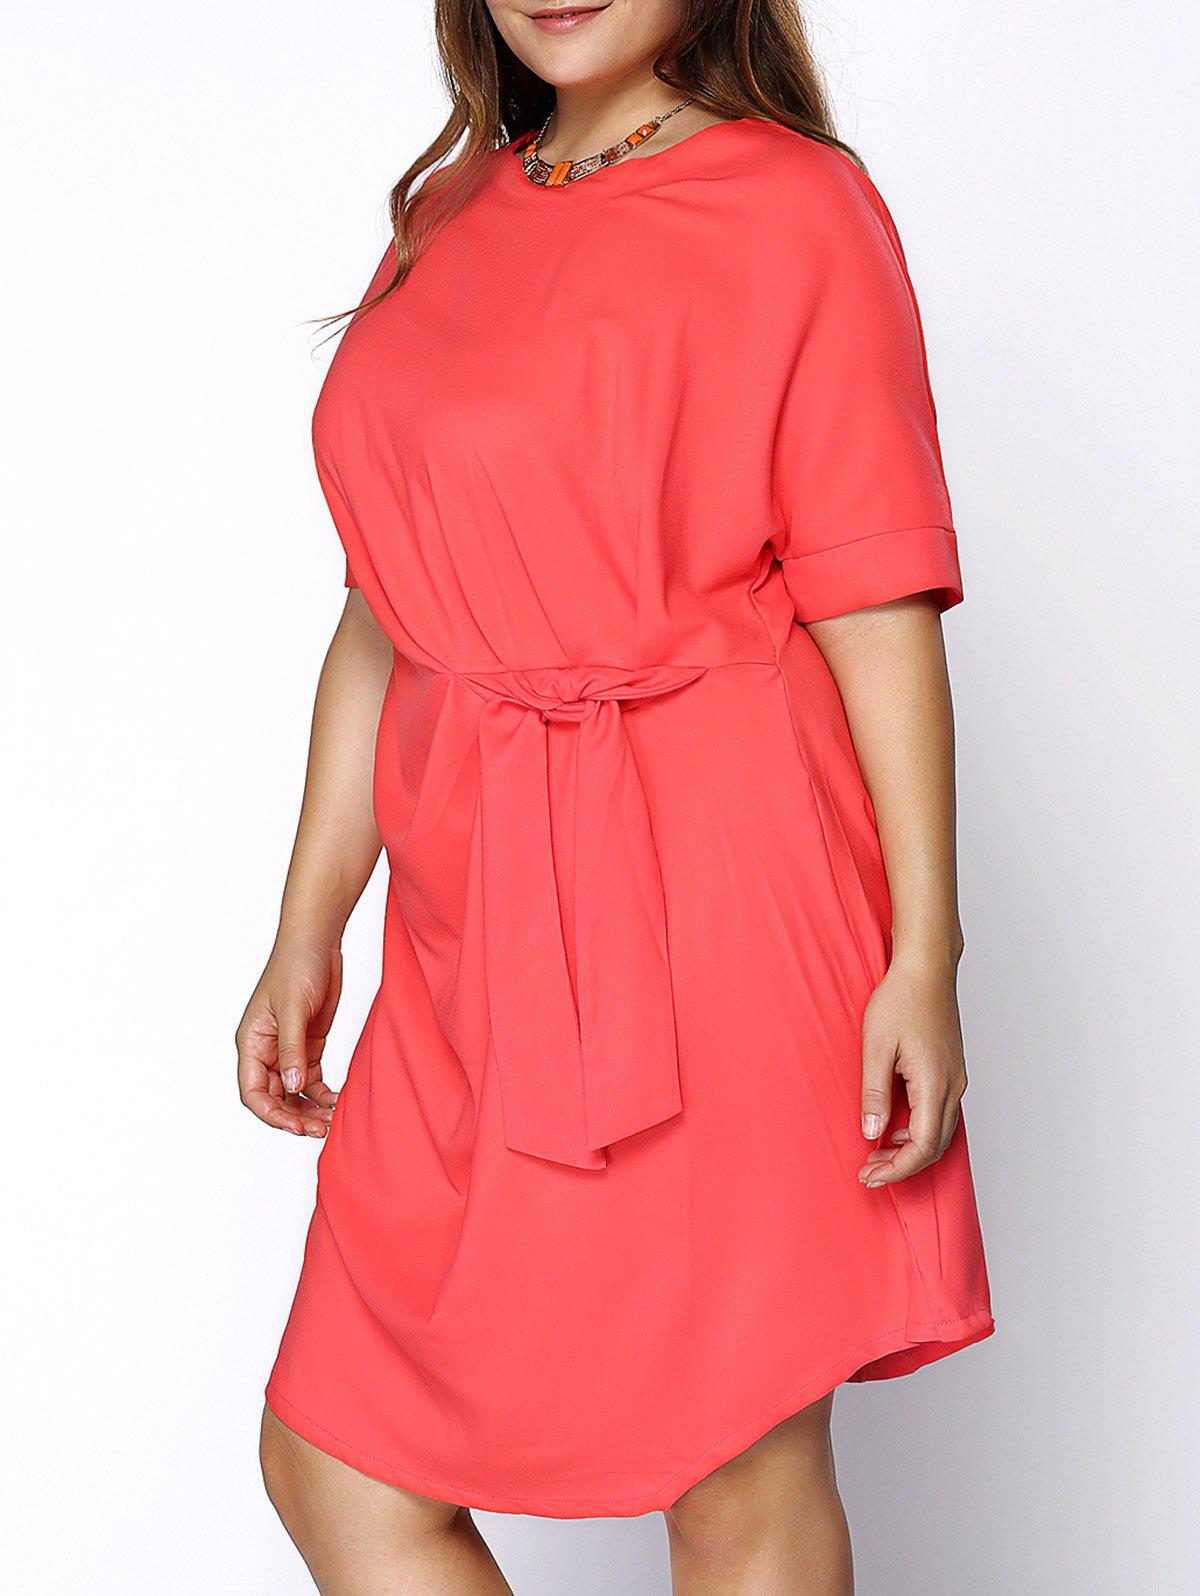 Chic Round Collar Knotted Solid Color Plus Size Women's Dress - RED 4XL